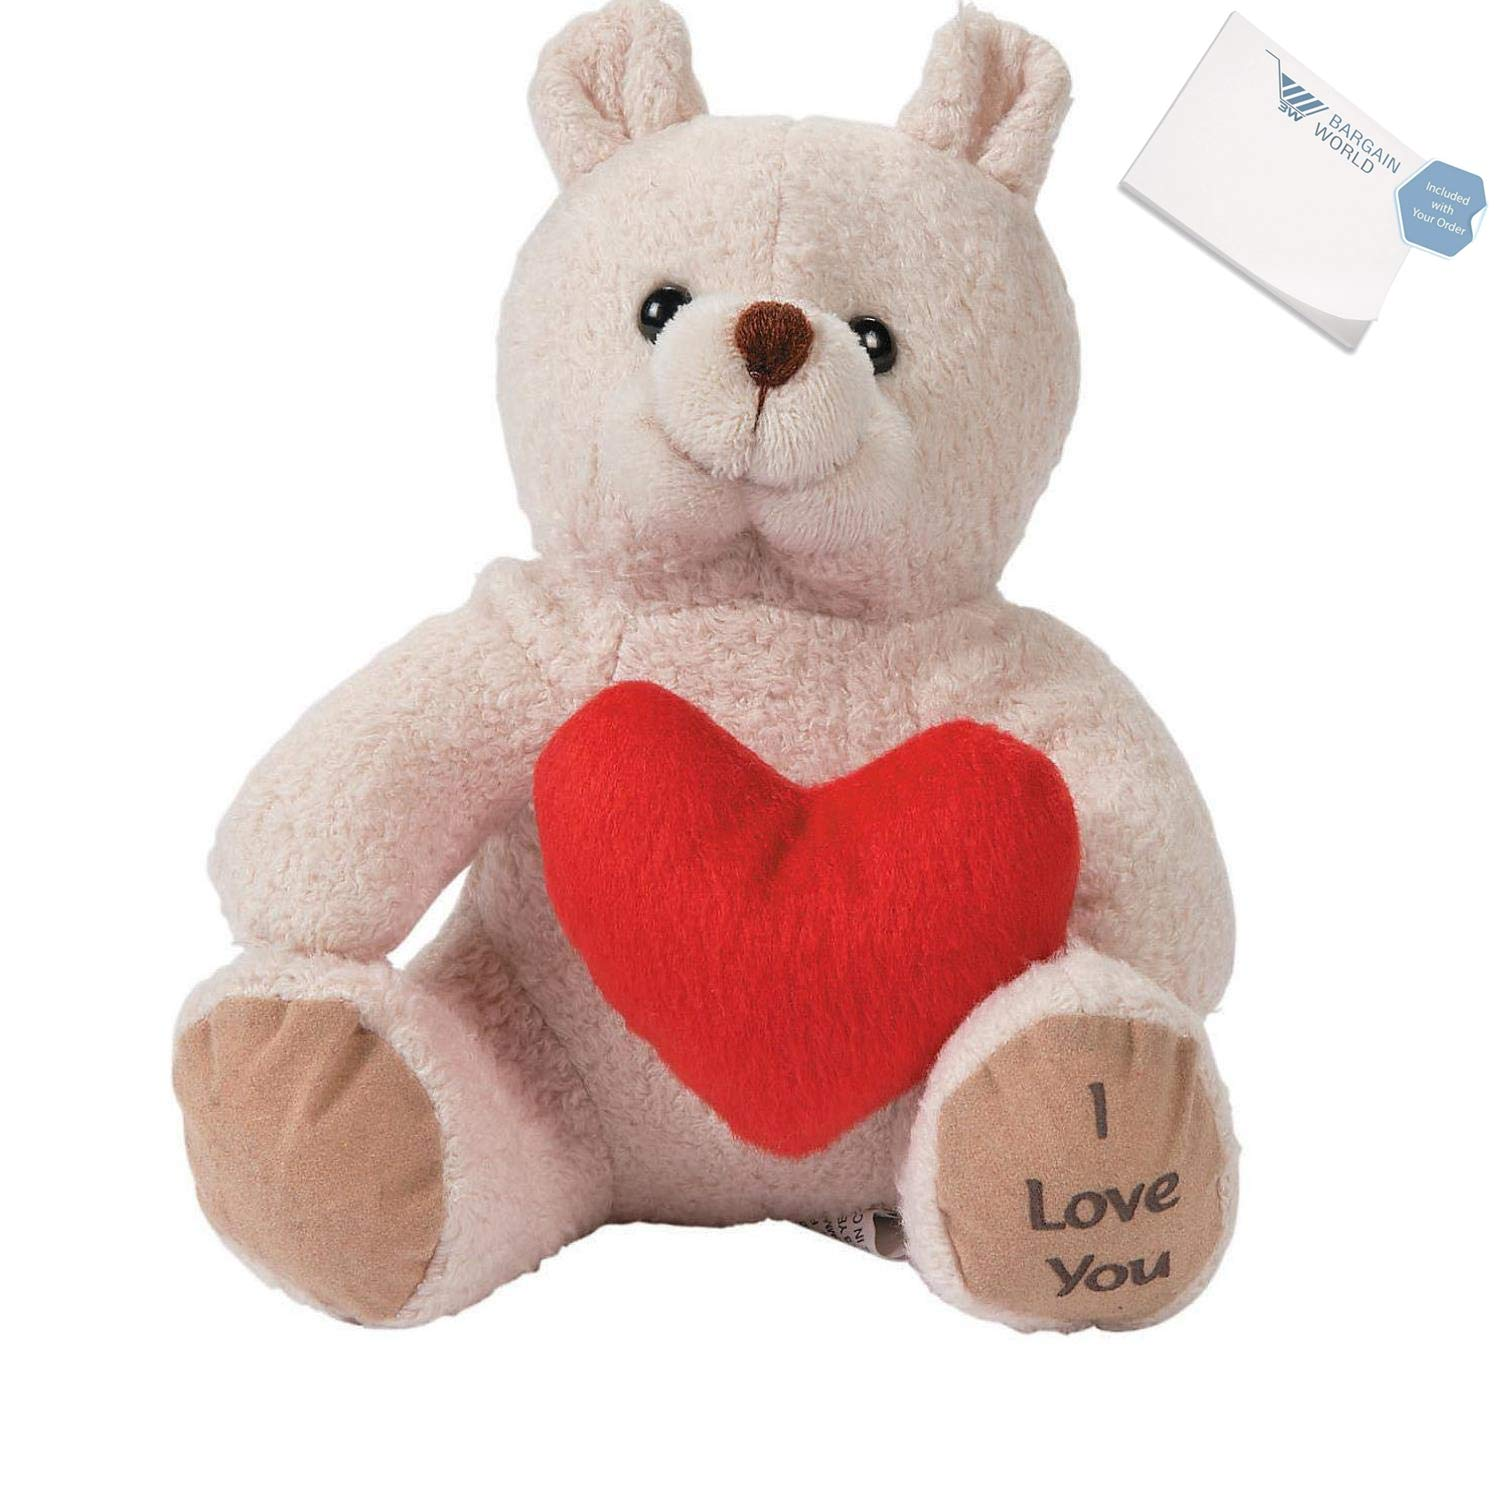 Valentine Stuffed Bears With Hearts (With Sticky Notes)